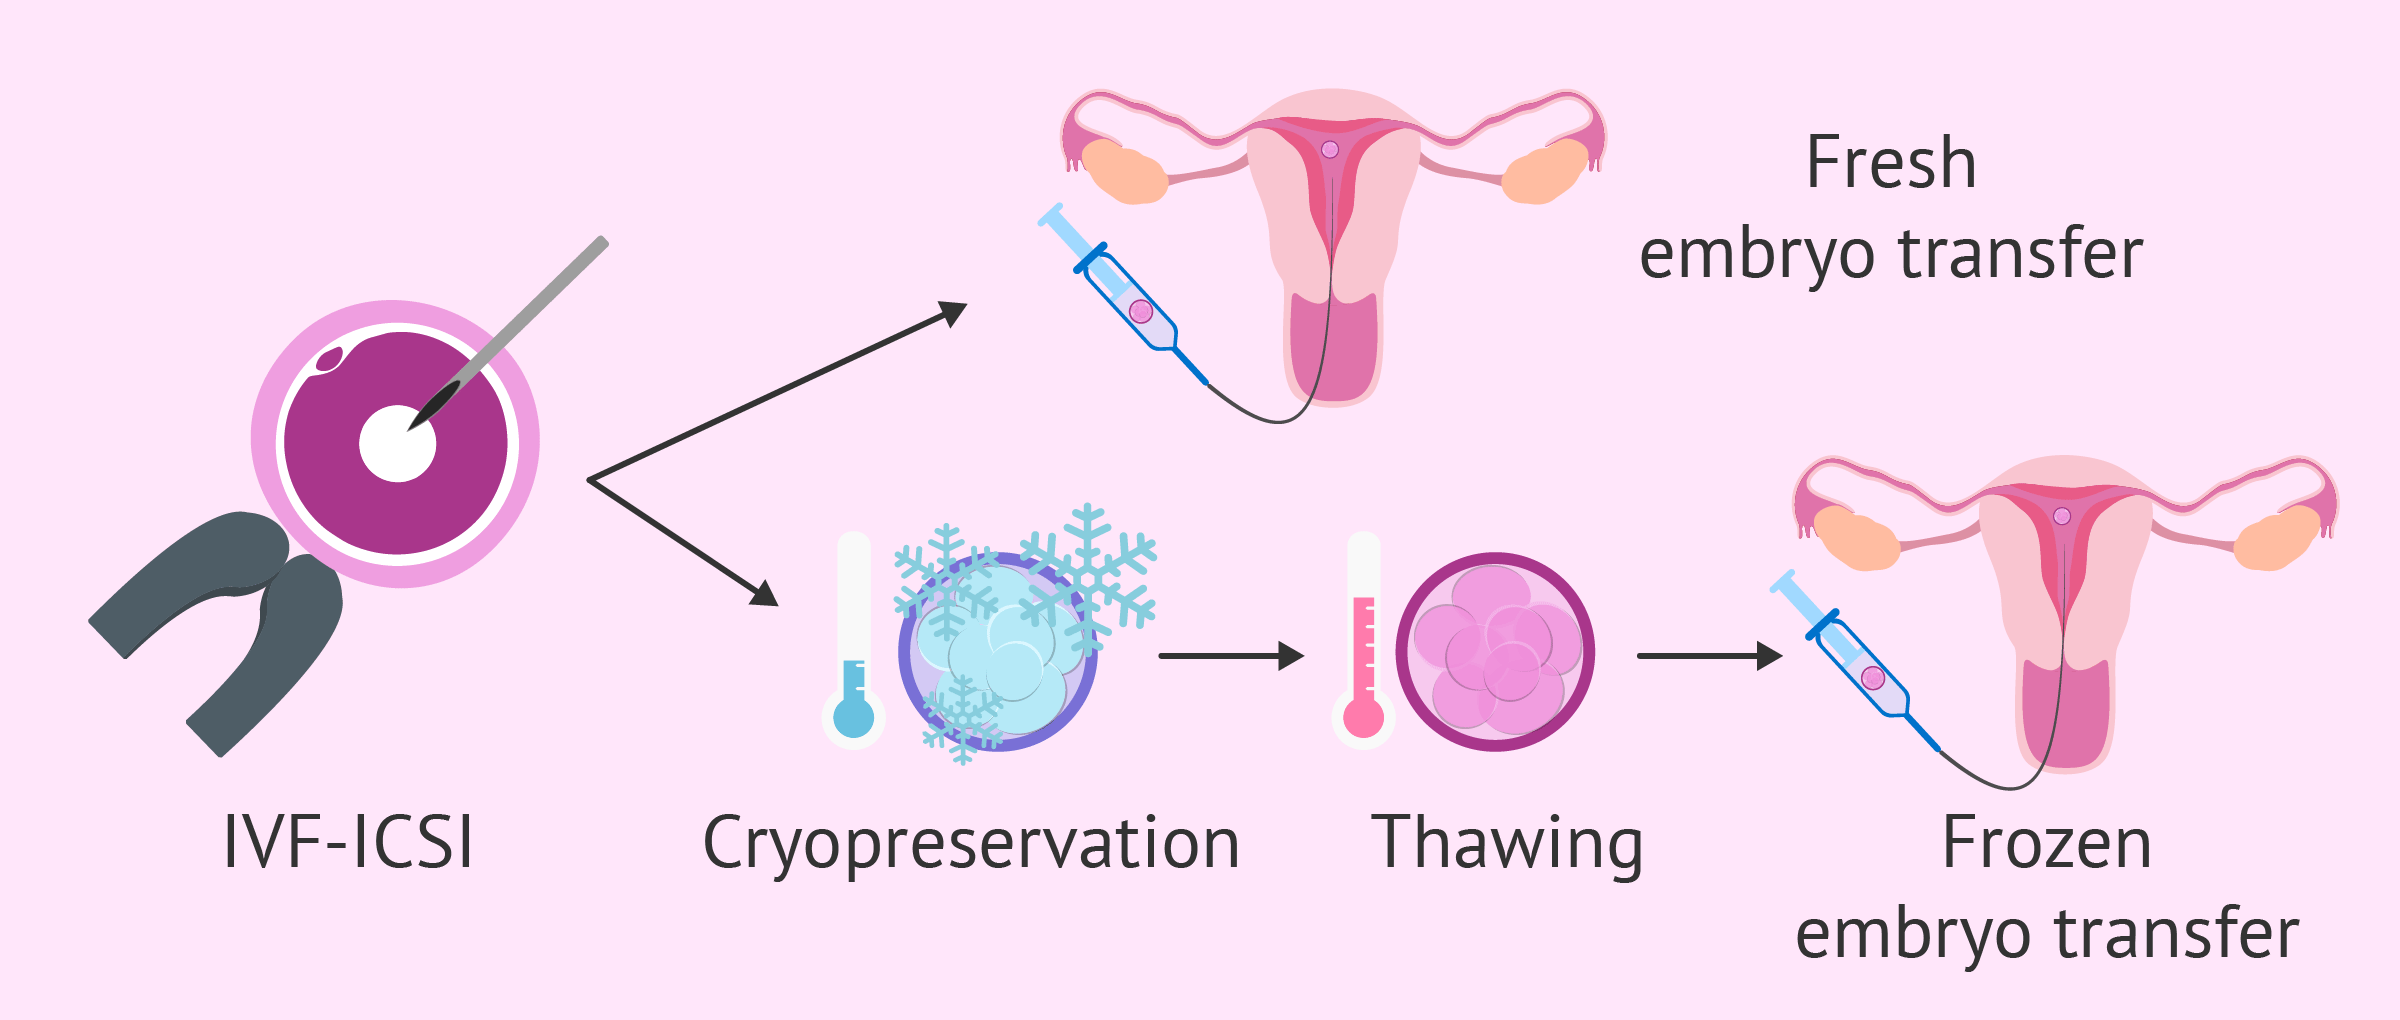 How Does the Frozen Embryo Transfer (FET) Procedure Work?